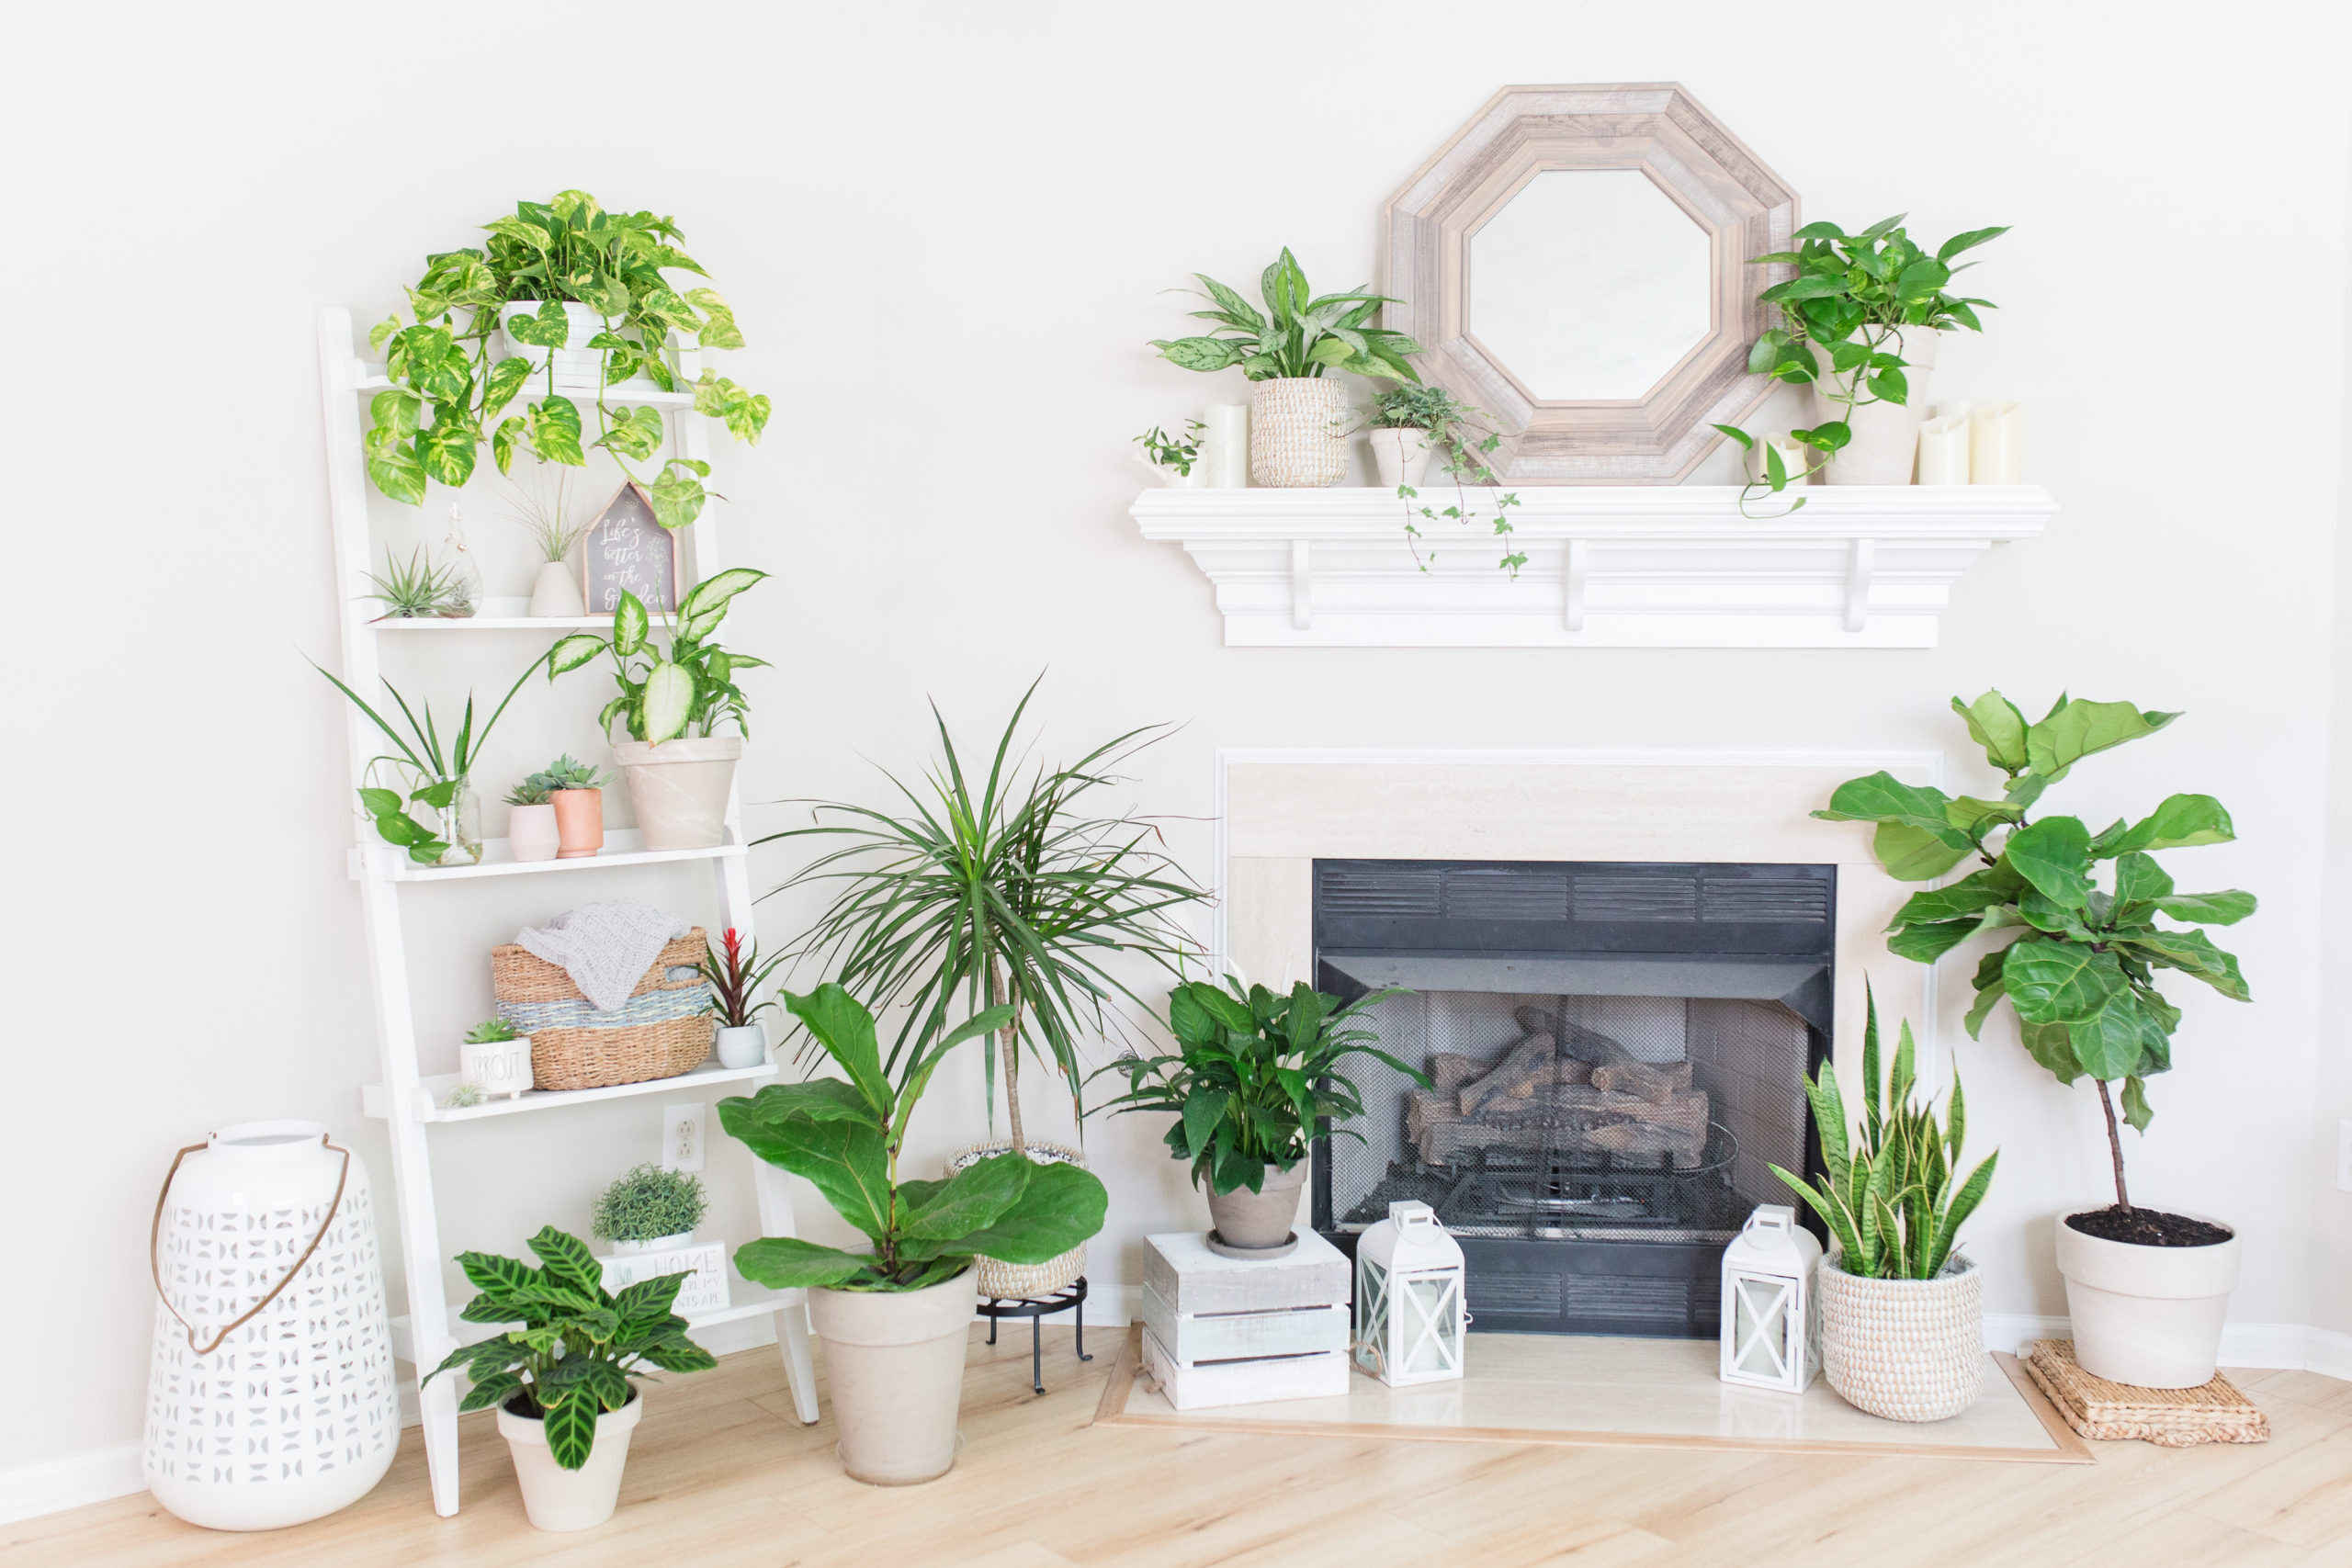 Learn the fundamentals of caring for your houseplants and what to look out for. Read more from The Houseplant Resource Center.